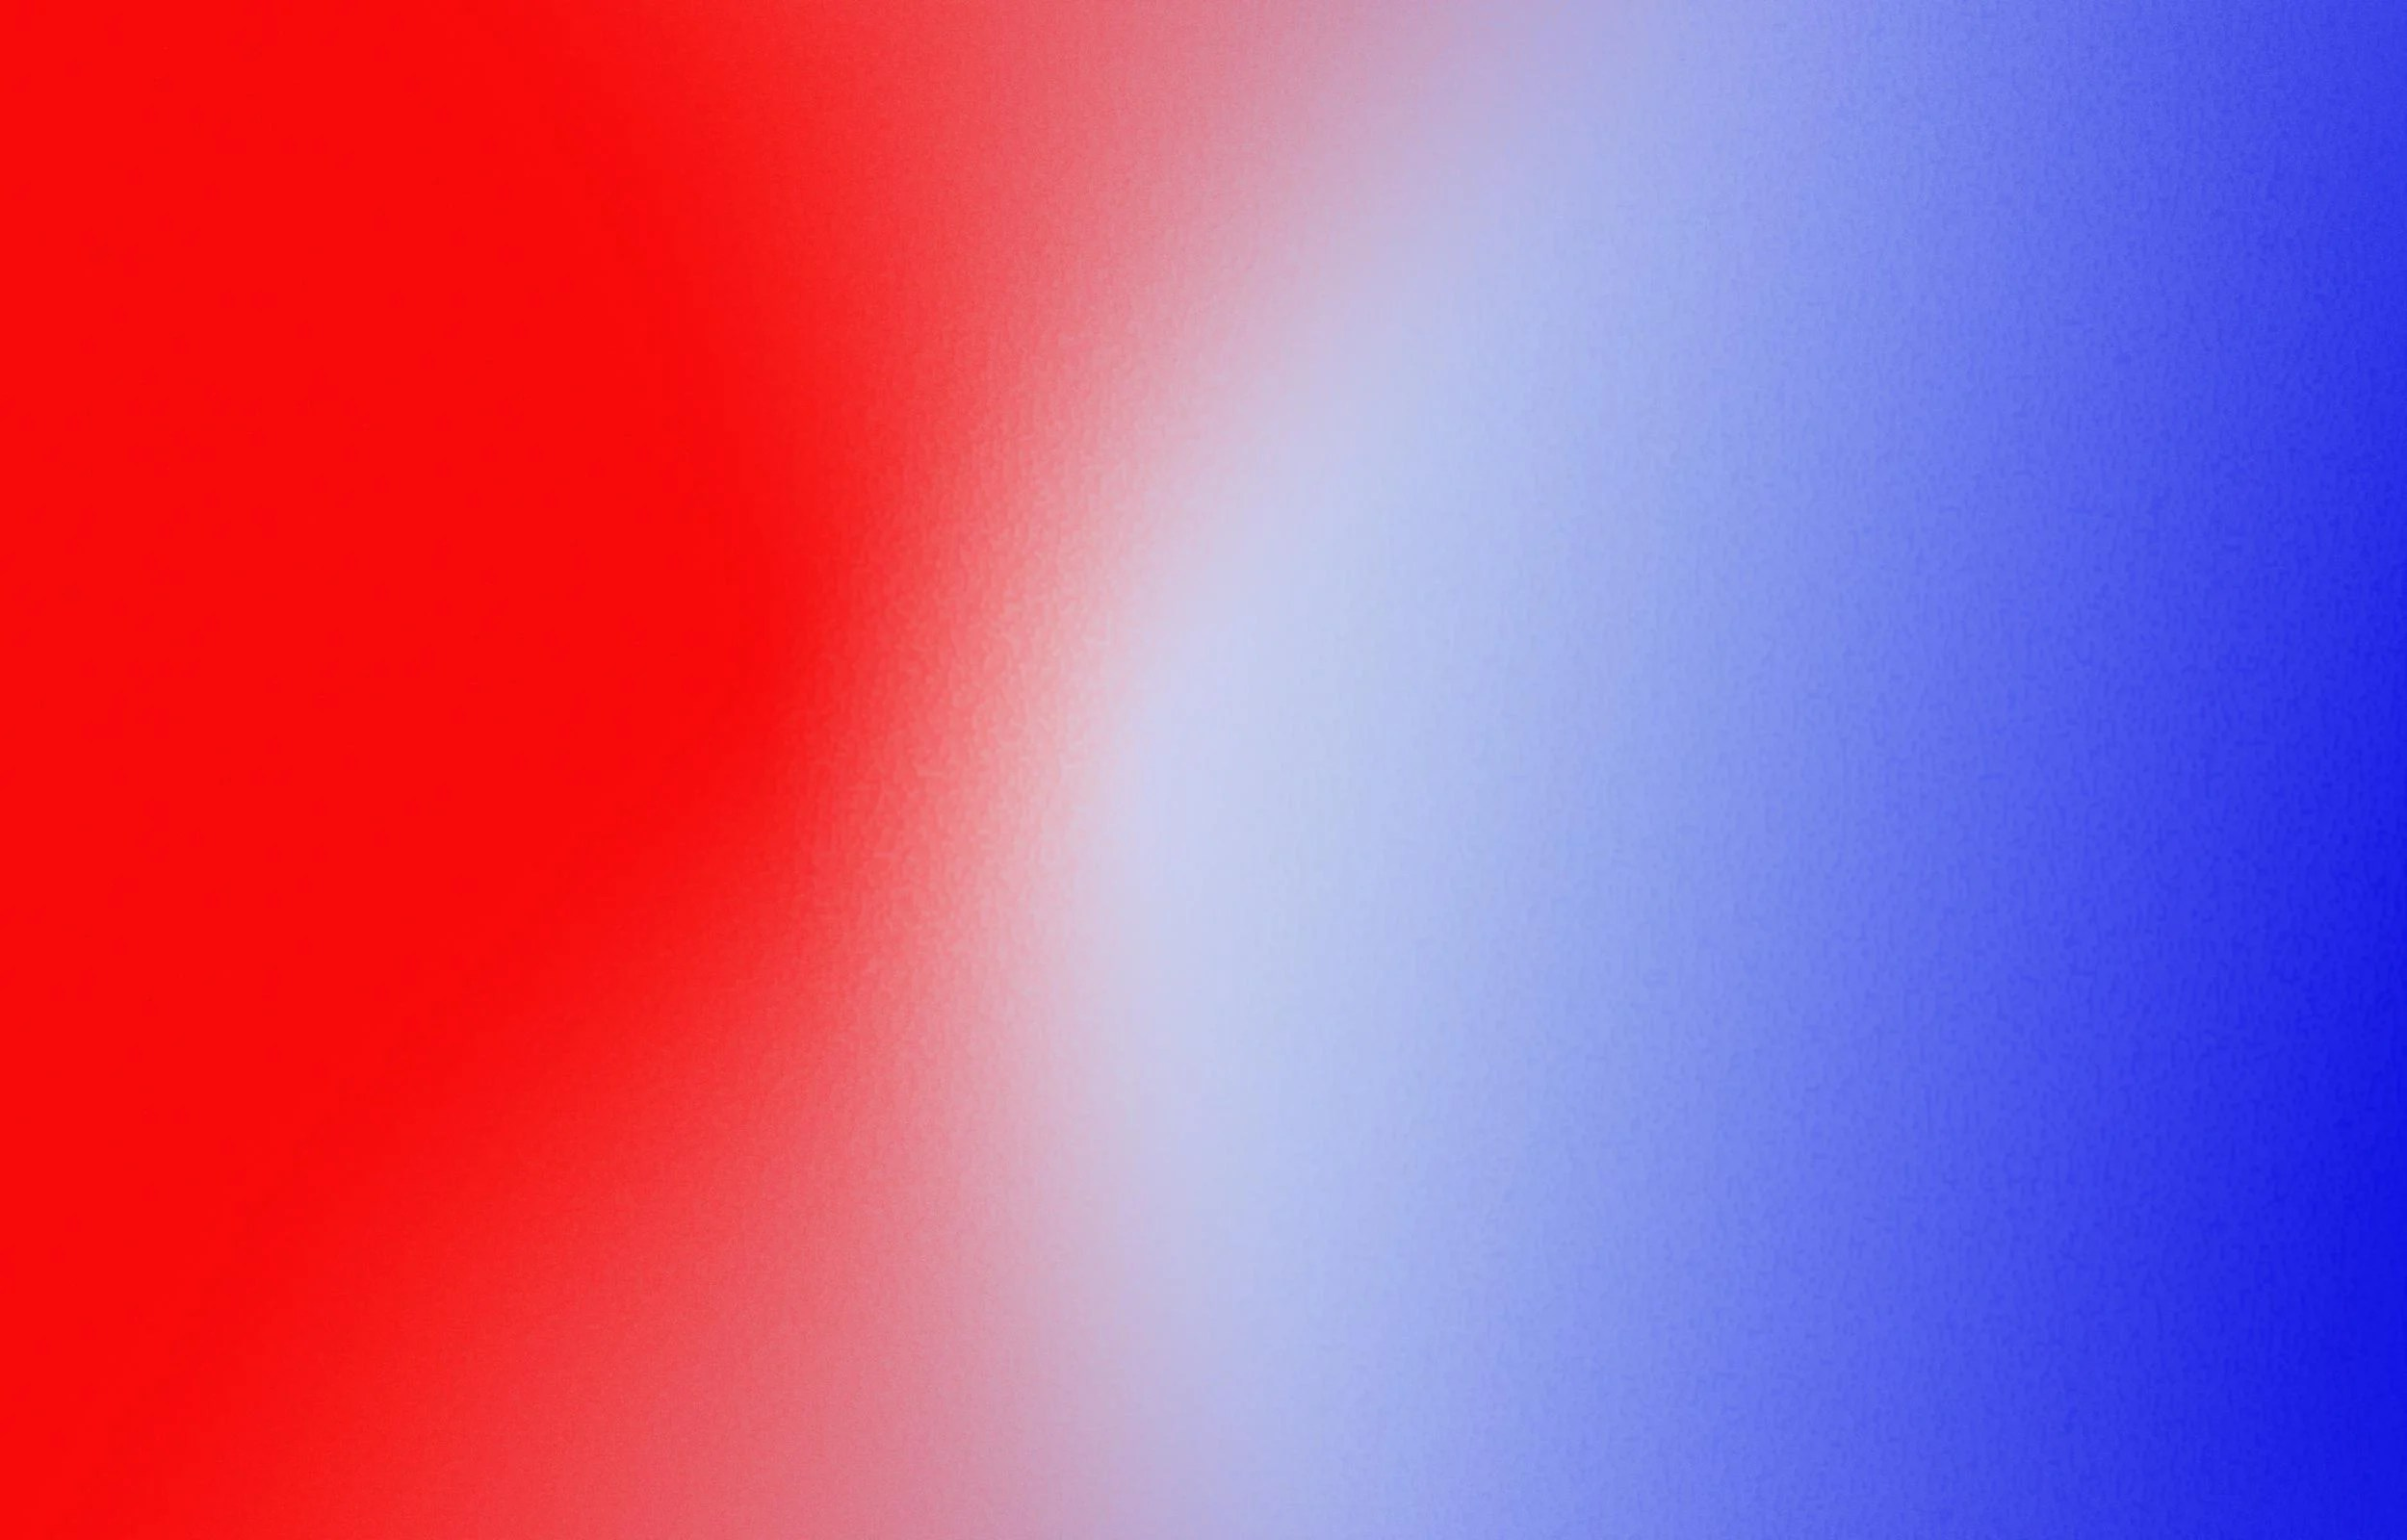 Red White And Blue Backgrounds  Wallpaper Cave